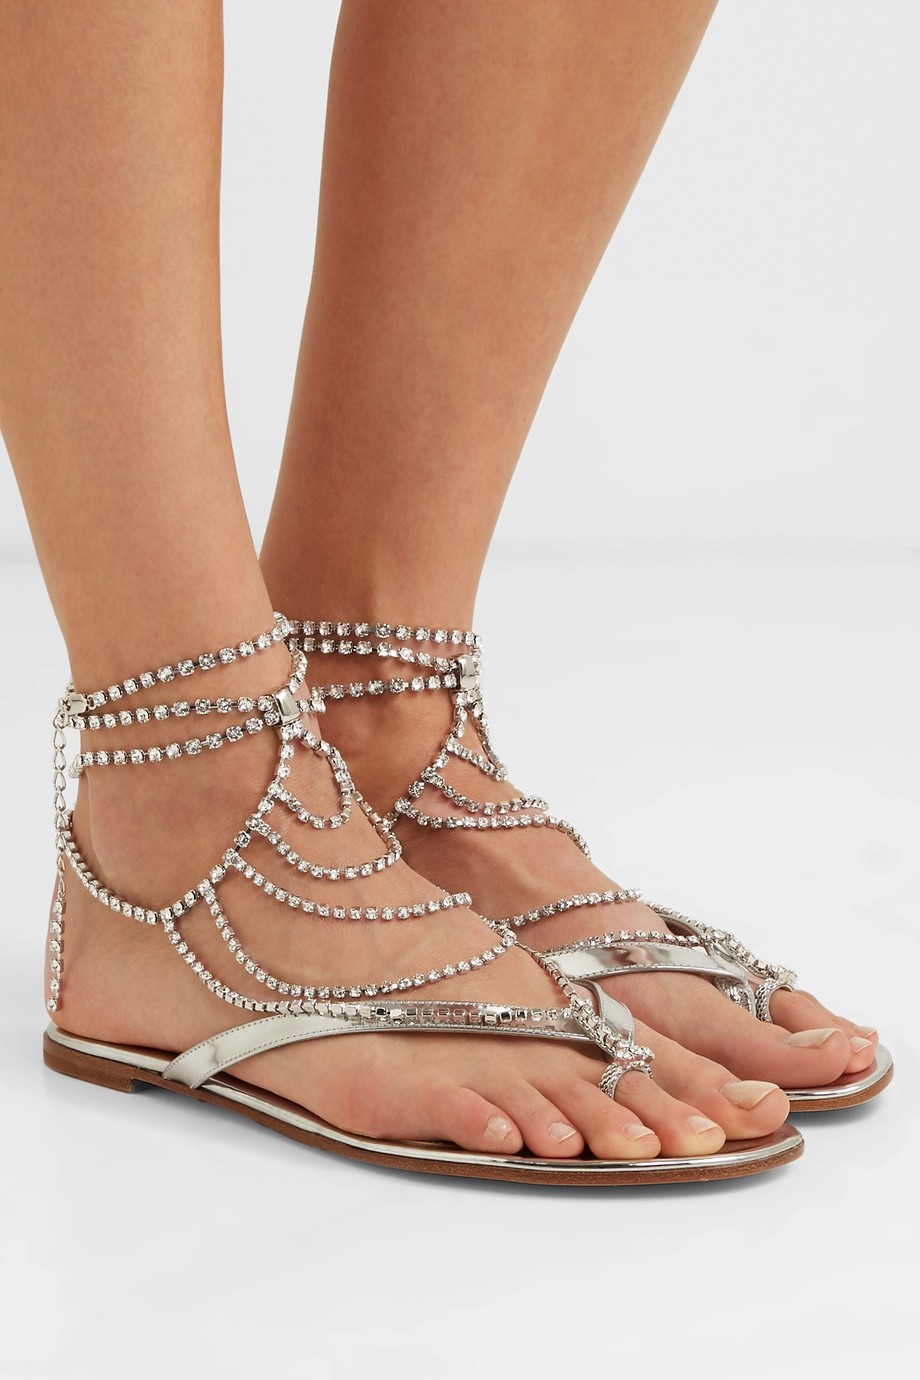 bfd34e115 Gianvito Rossi Tennis crystal-embellished mirrored-leather sandals